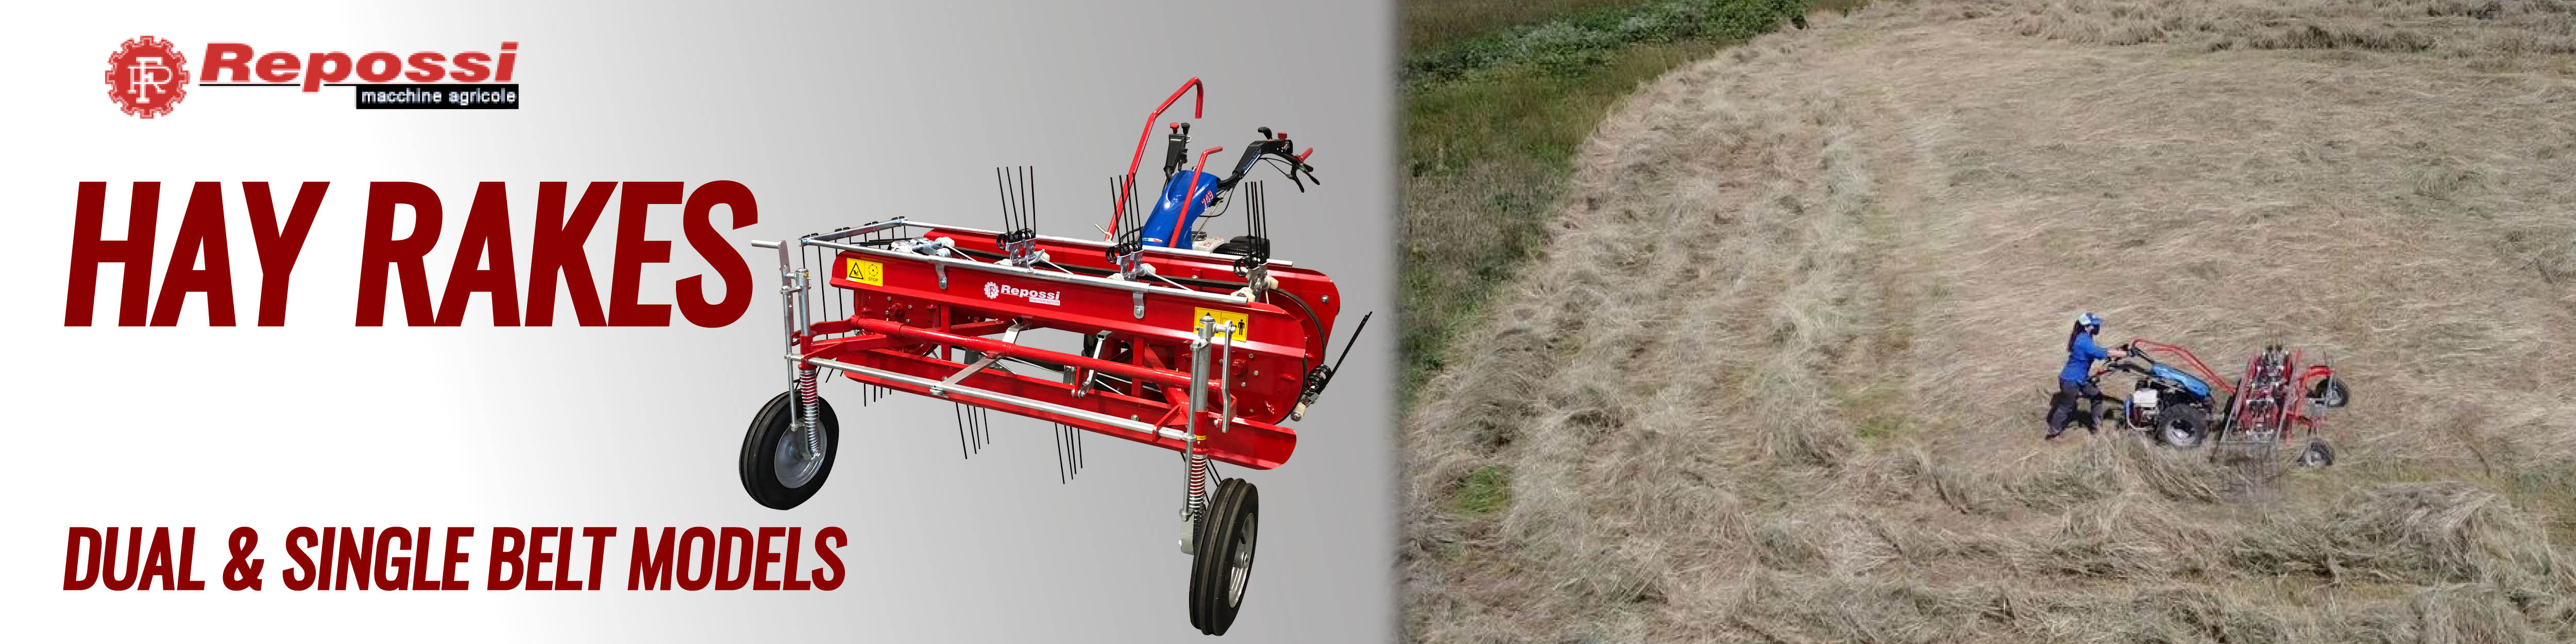 Now Offering Hay Rakes from Repossi